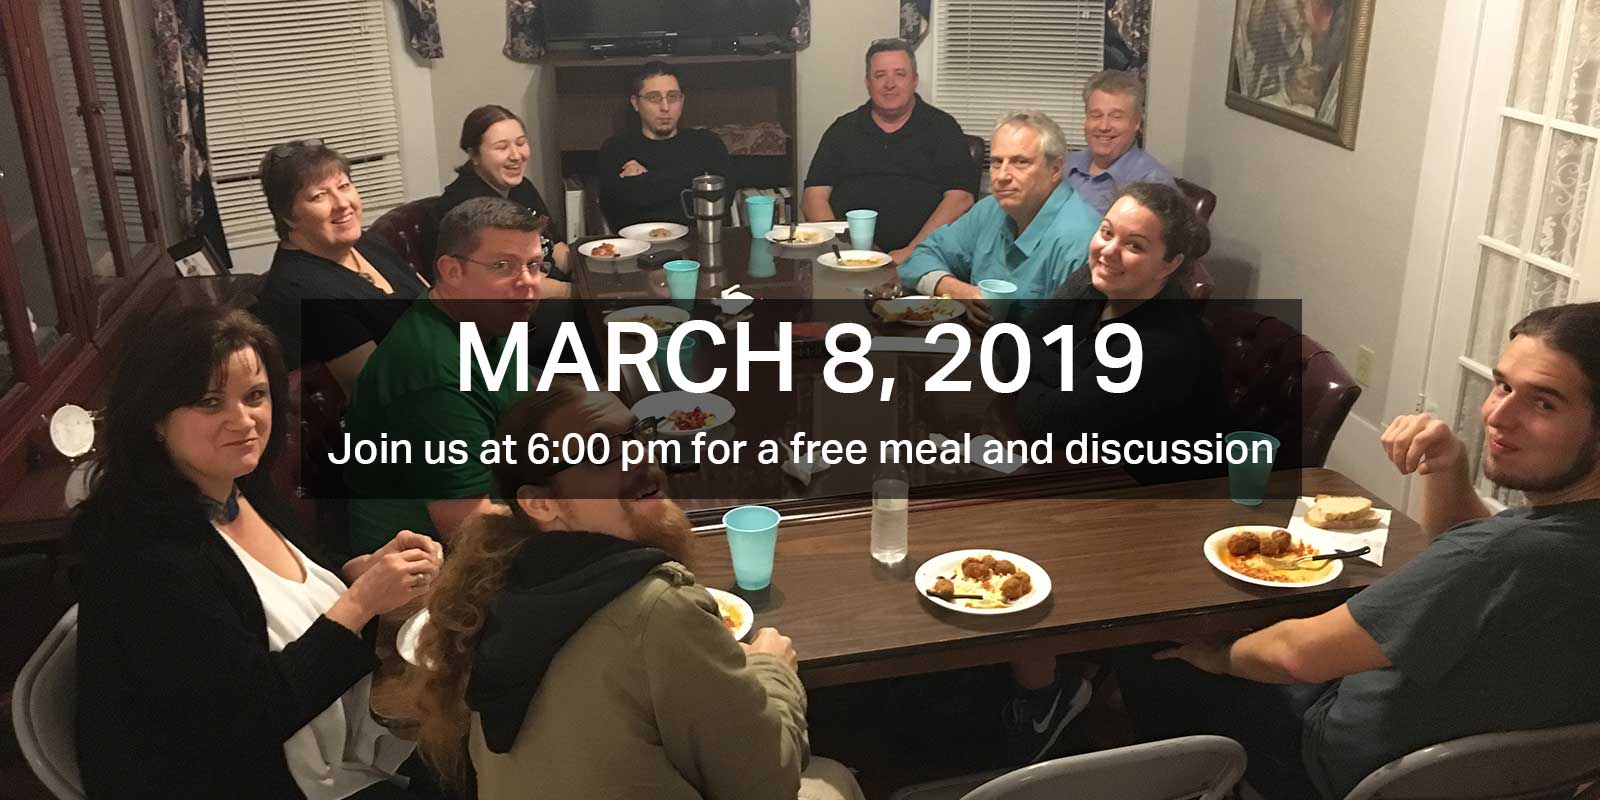 Our next meeting is 3/8/19